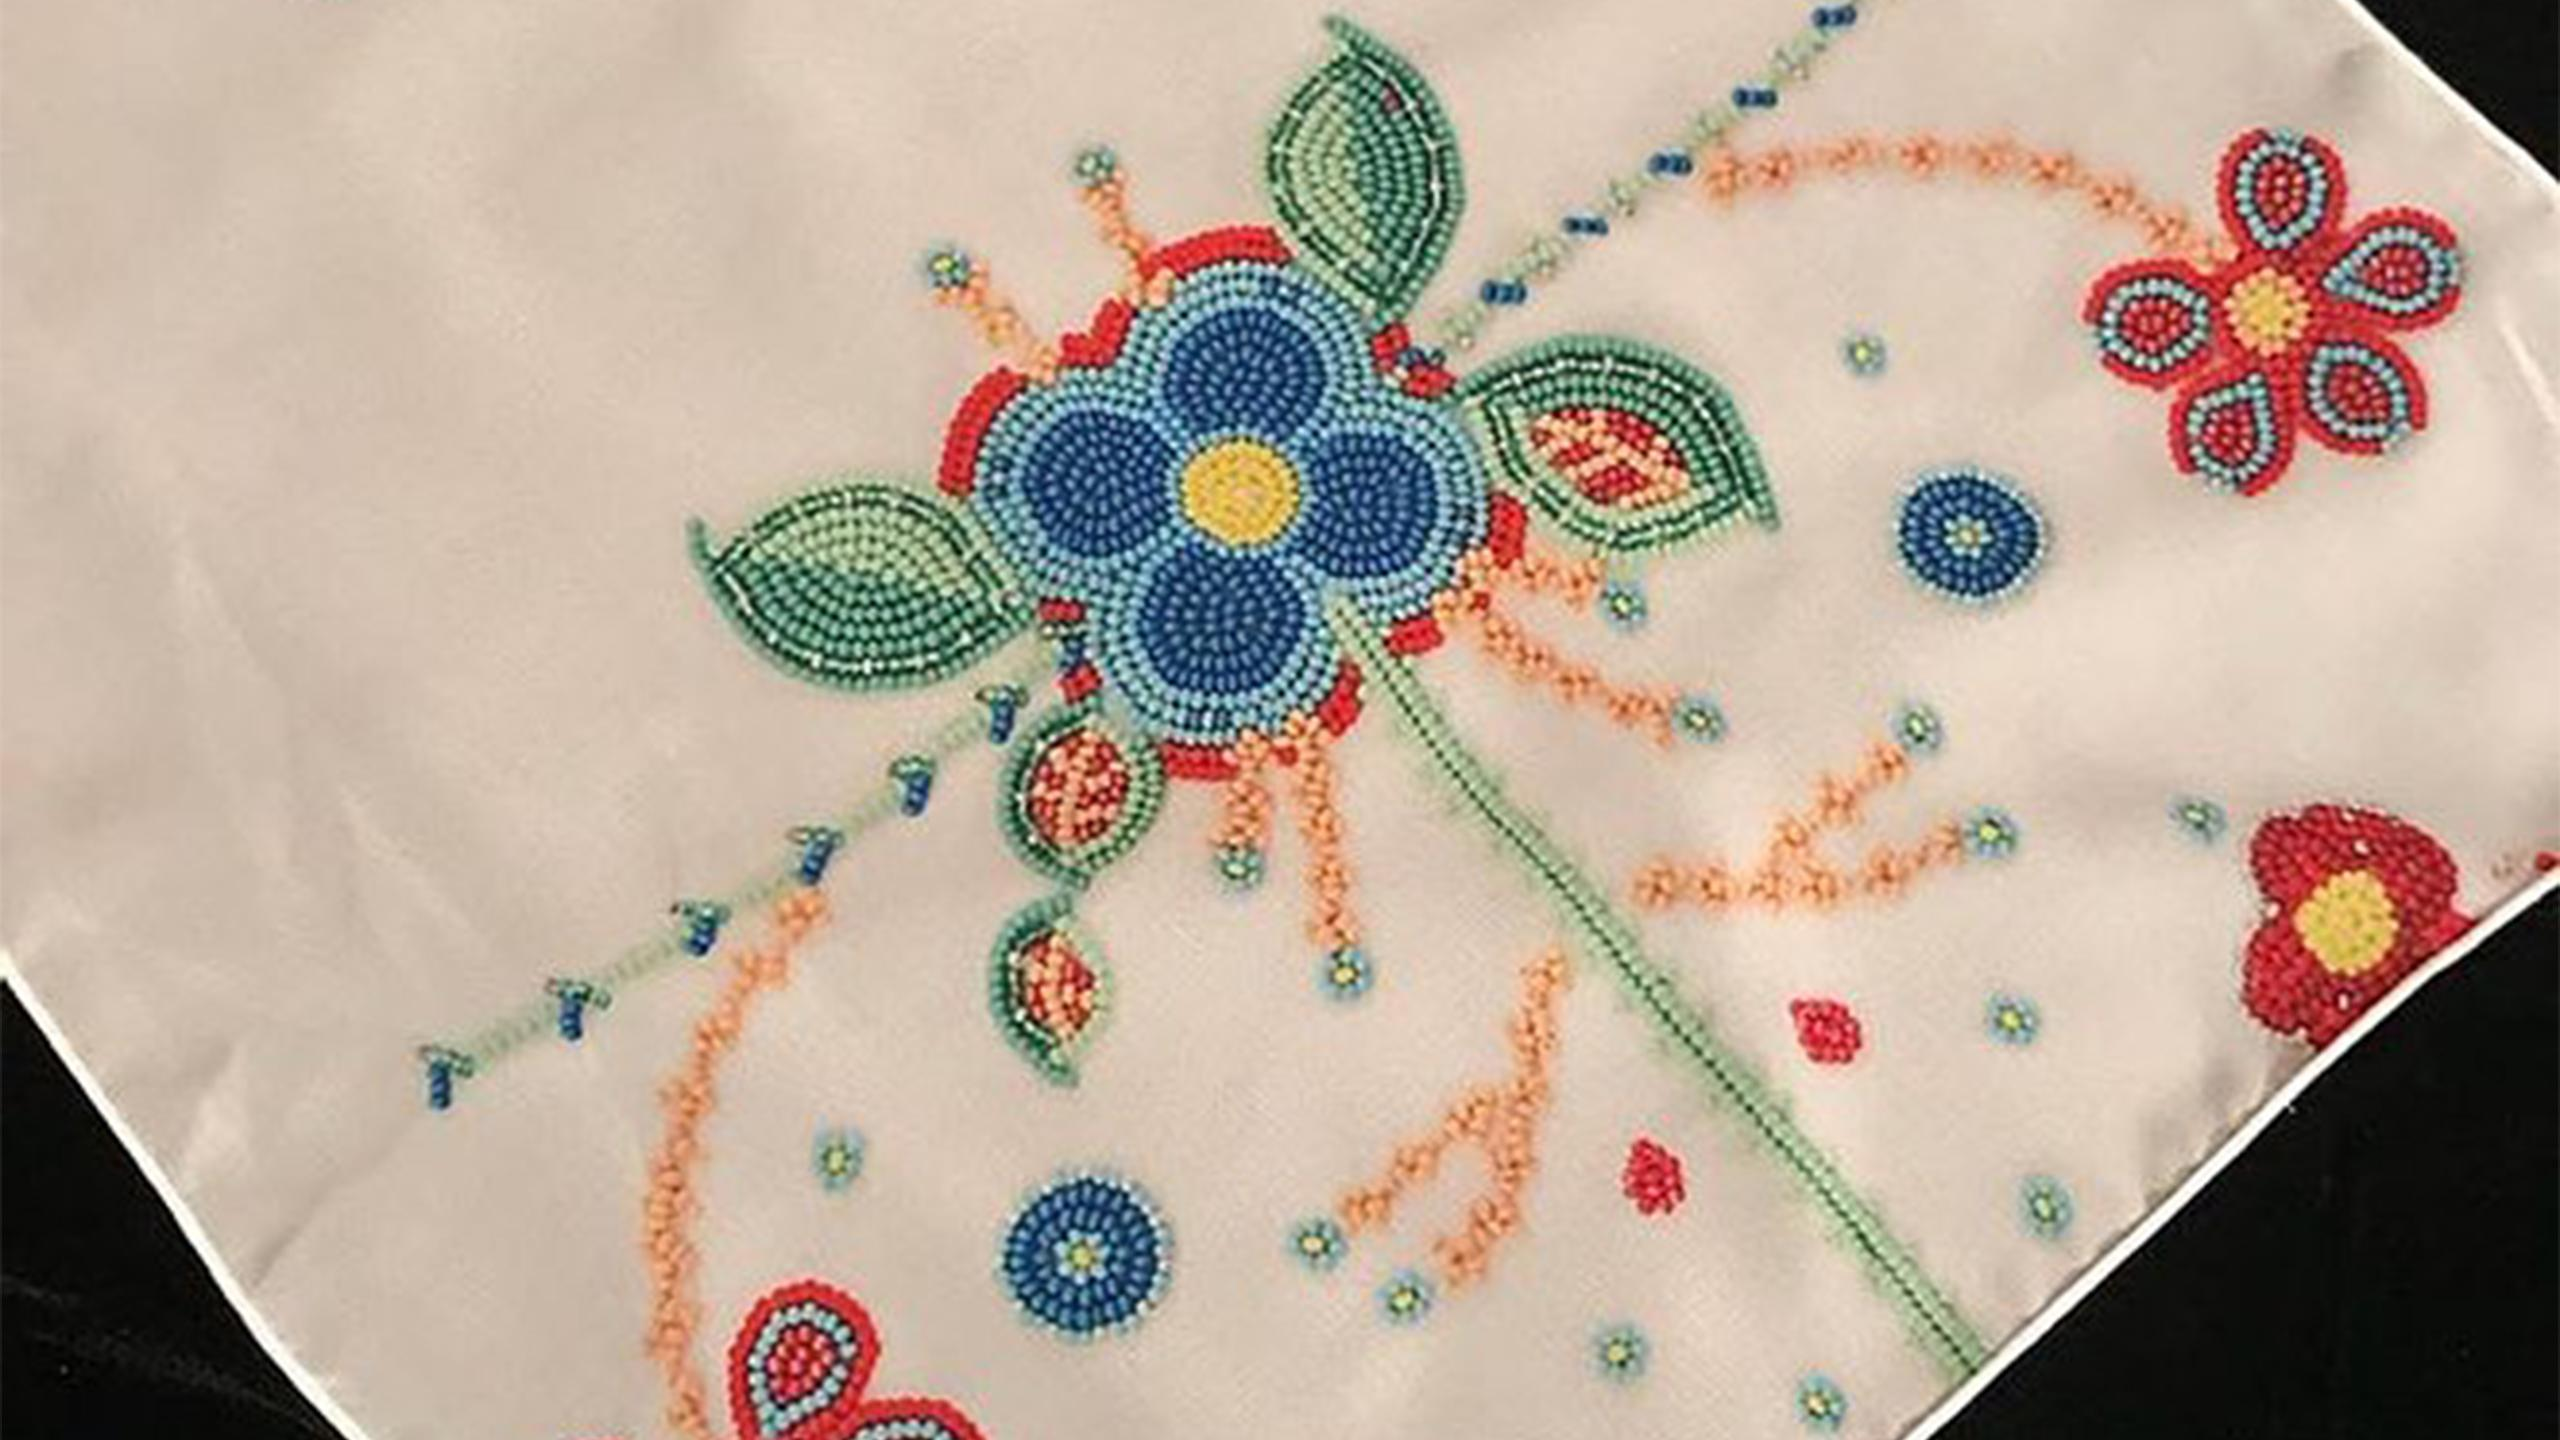 Beaded fabric with an intricate floral pattern.